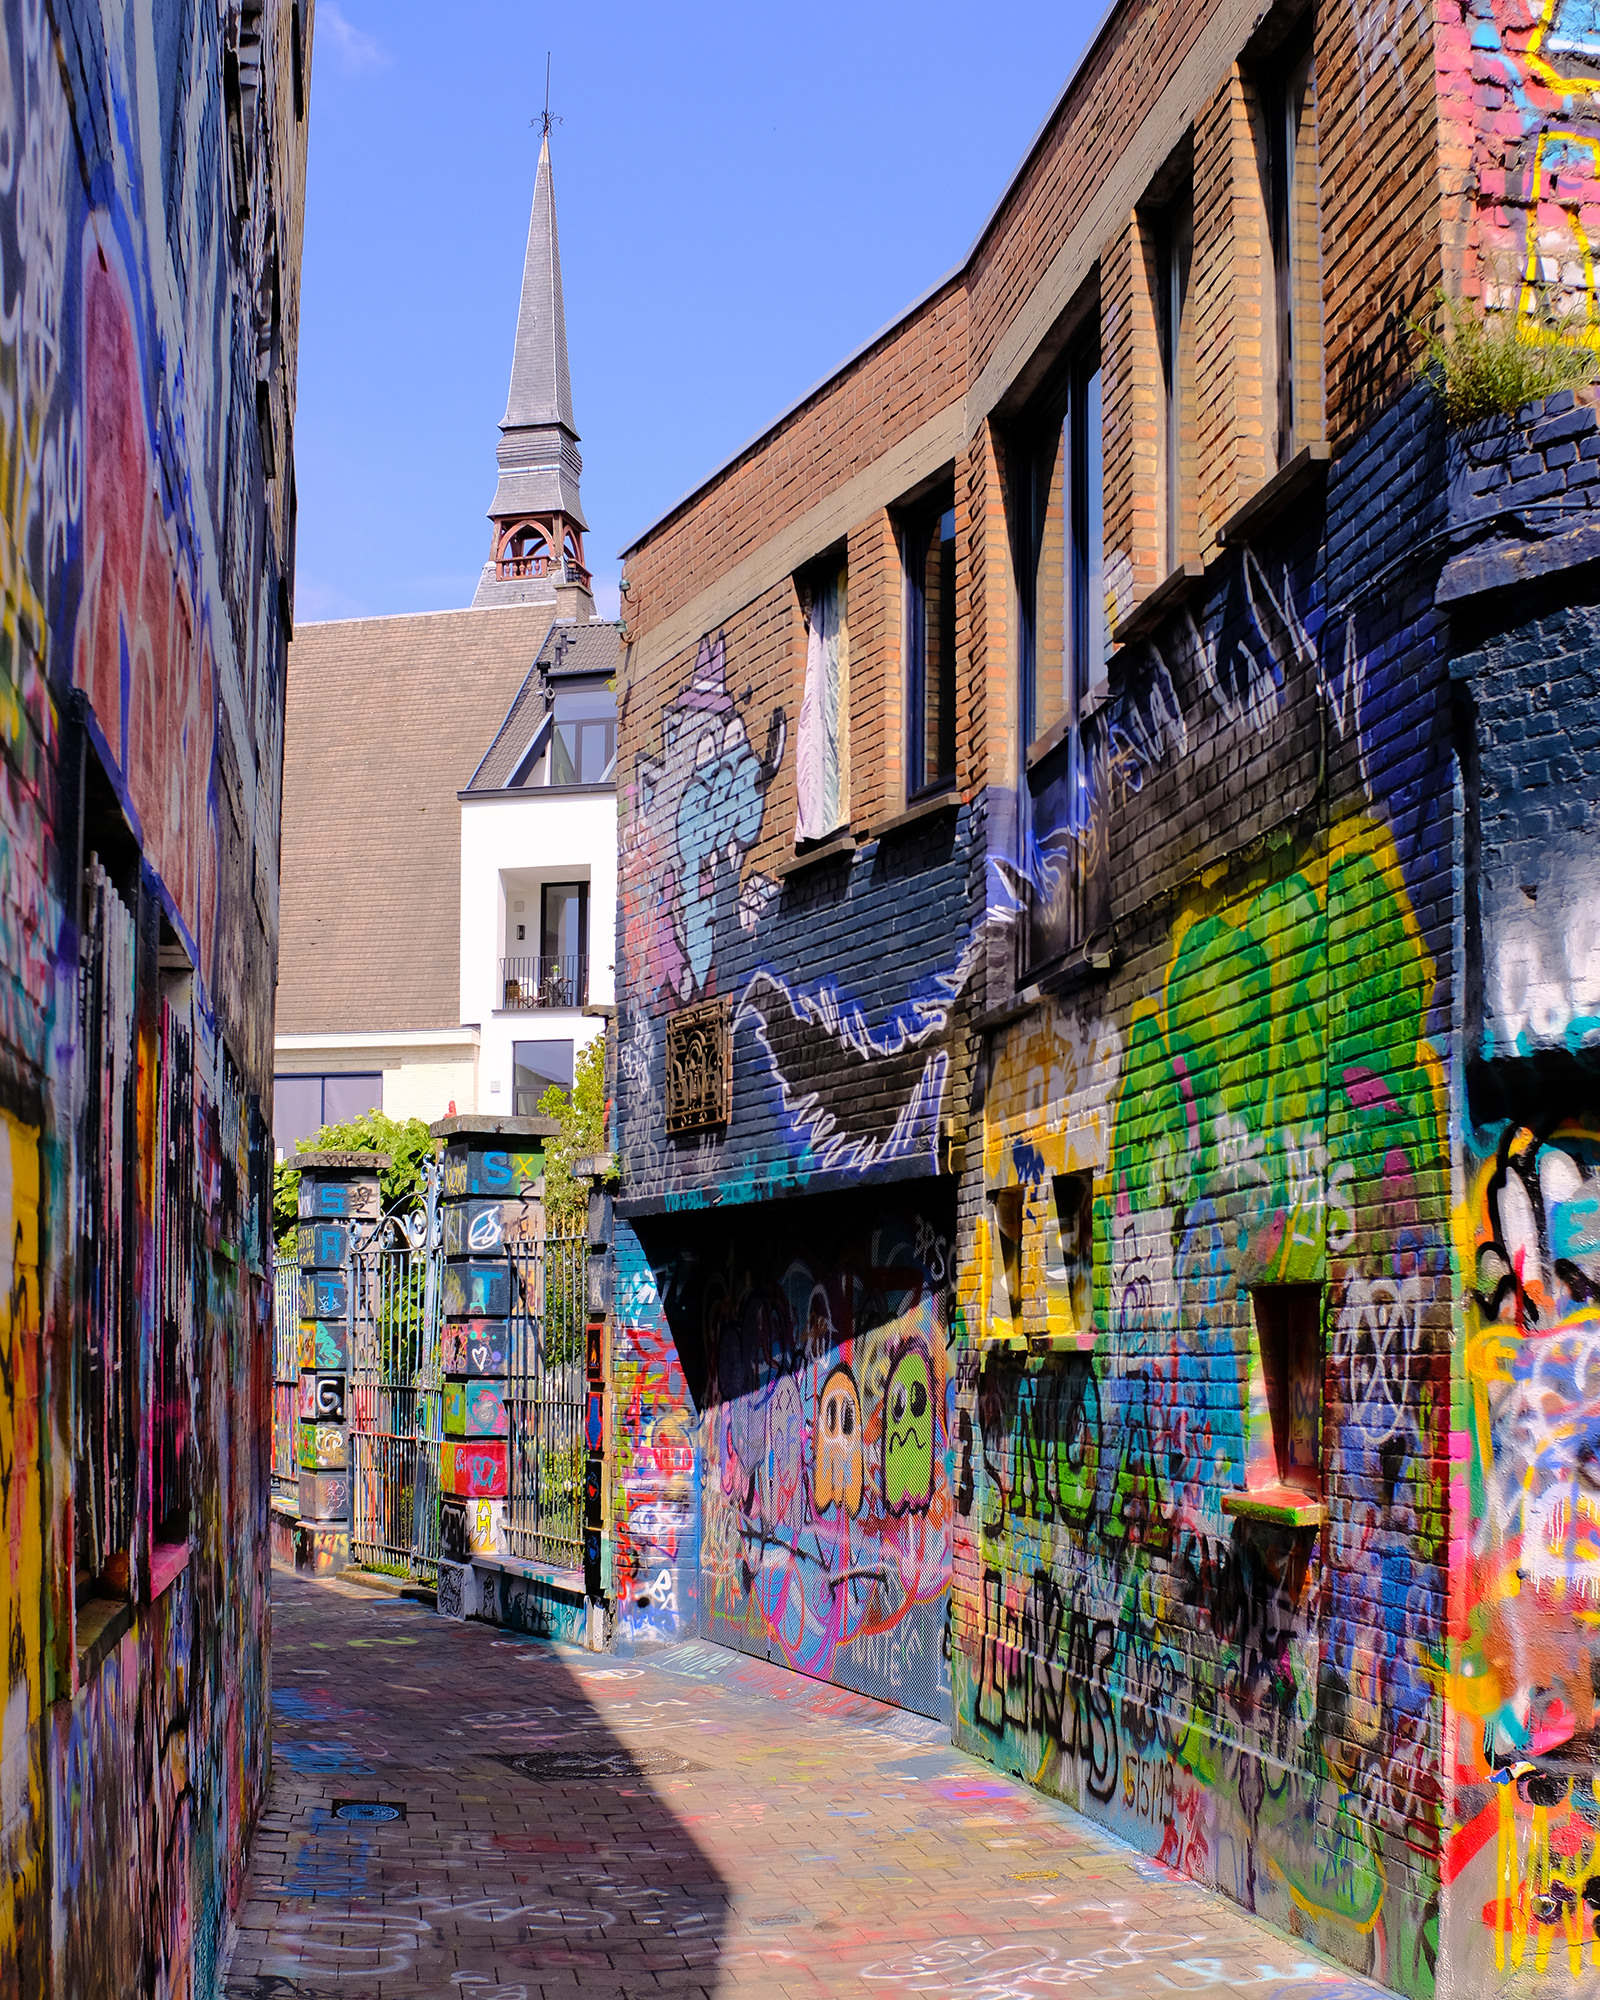 Graffiti Street, Ghent   Click image to enlarge